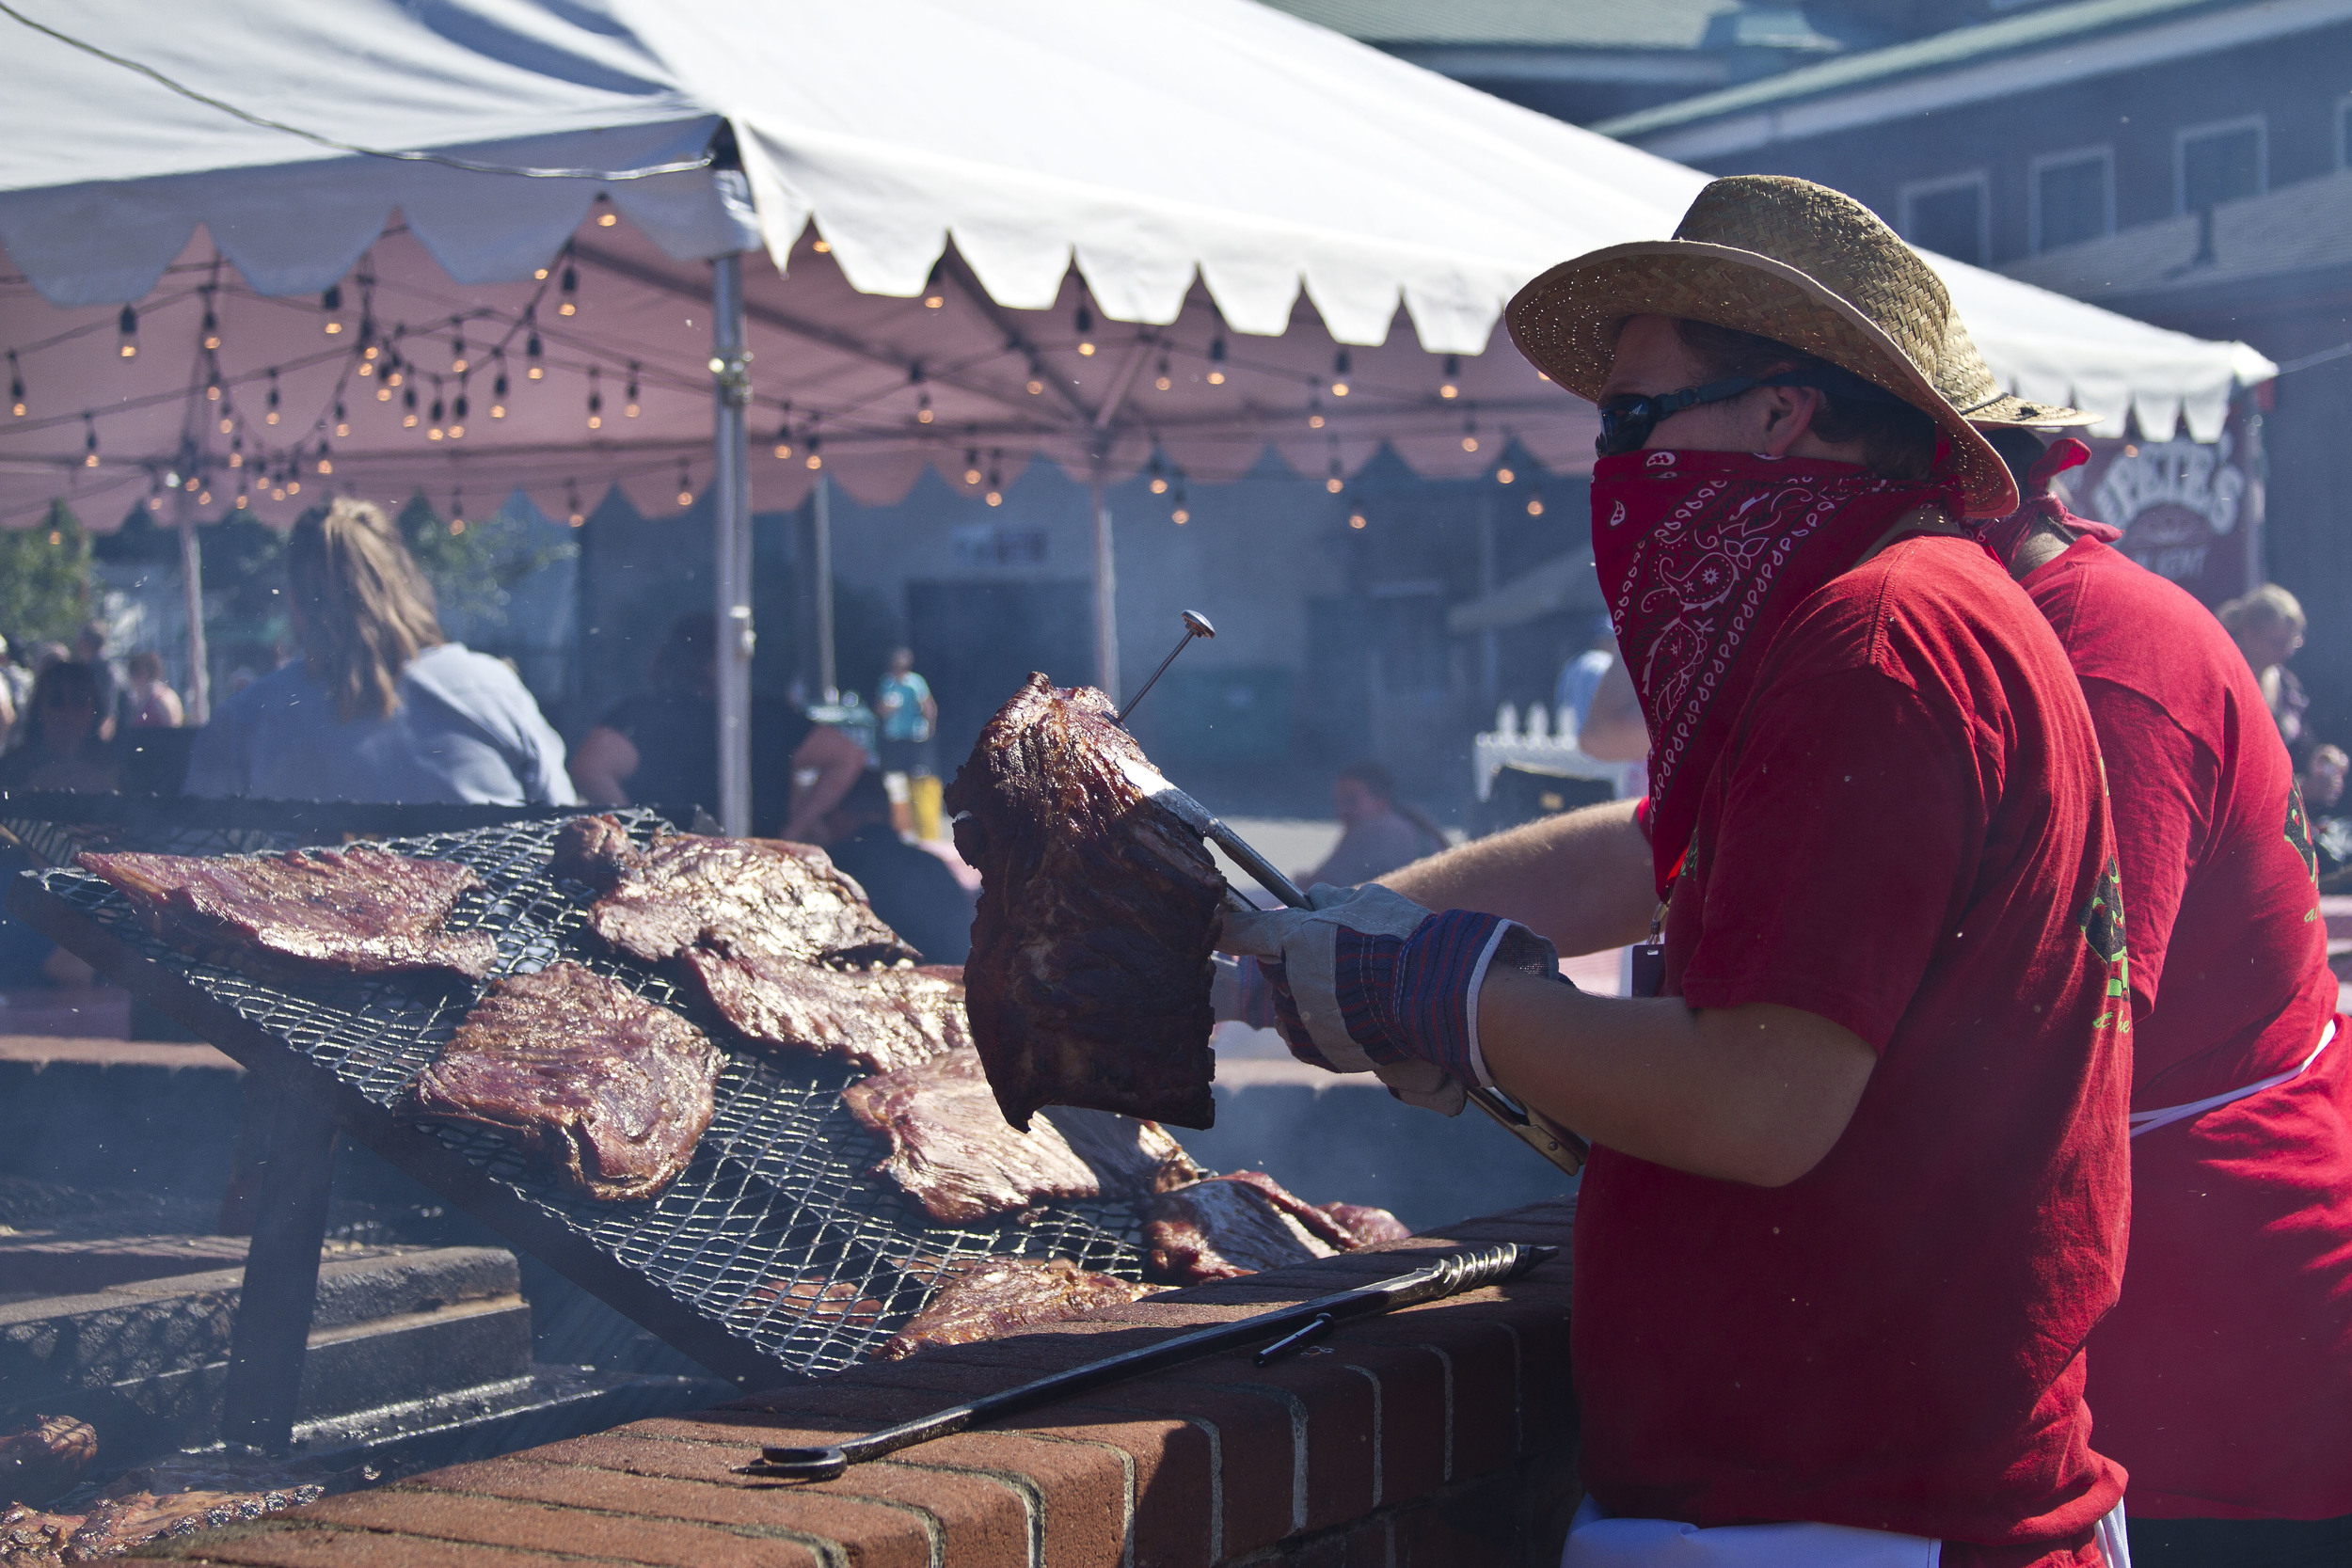 Vendors prepare BBQ and ribs at the 2014 Washington State Fair.